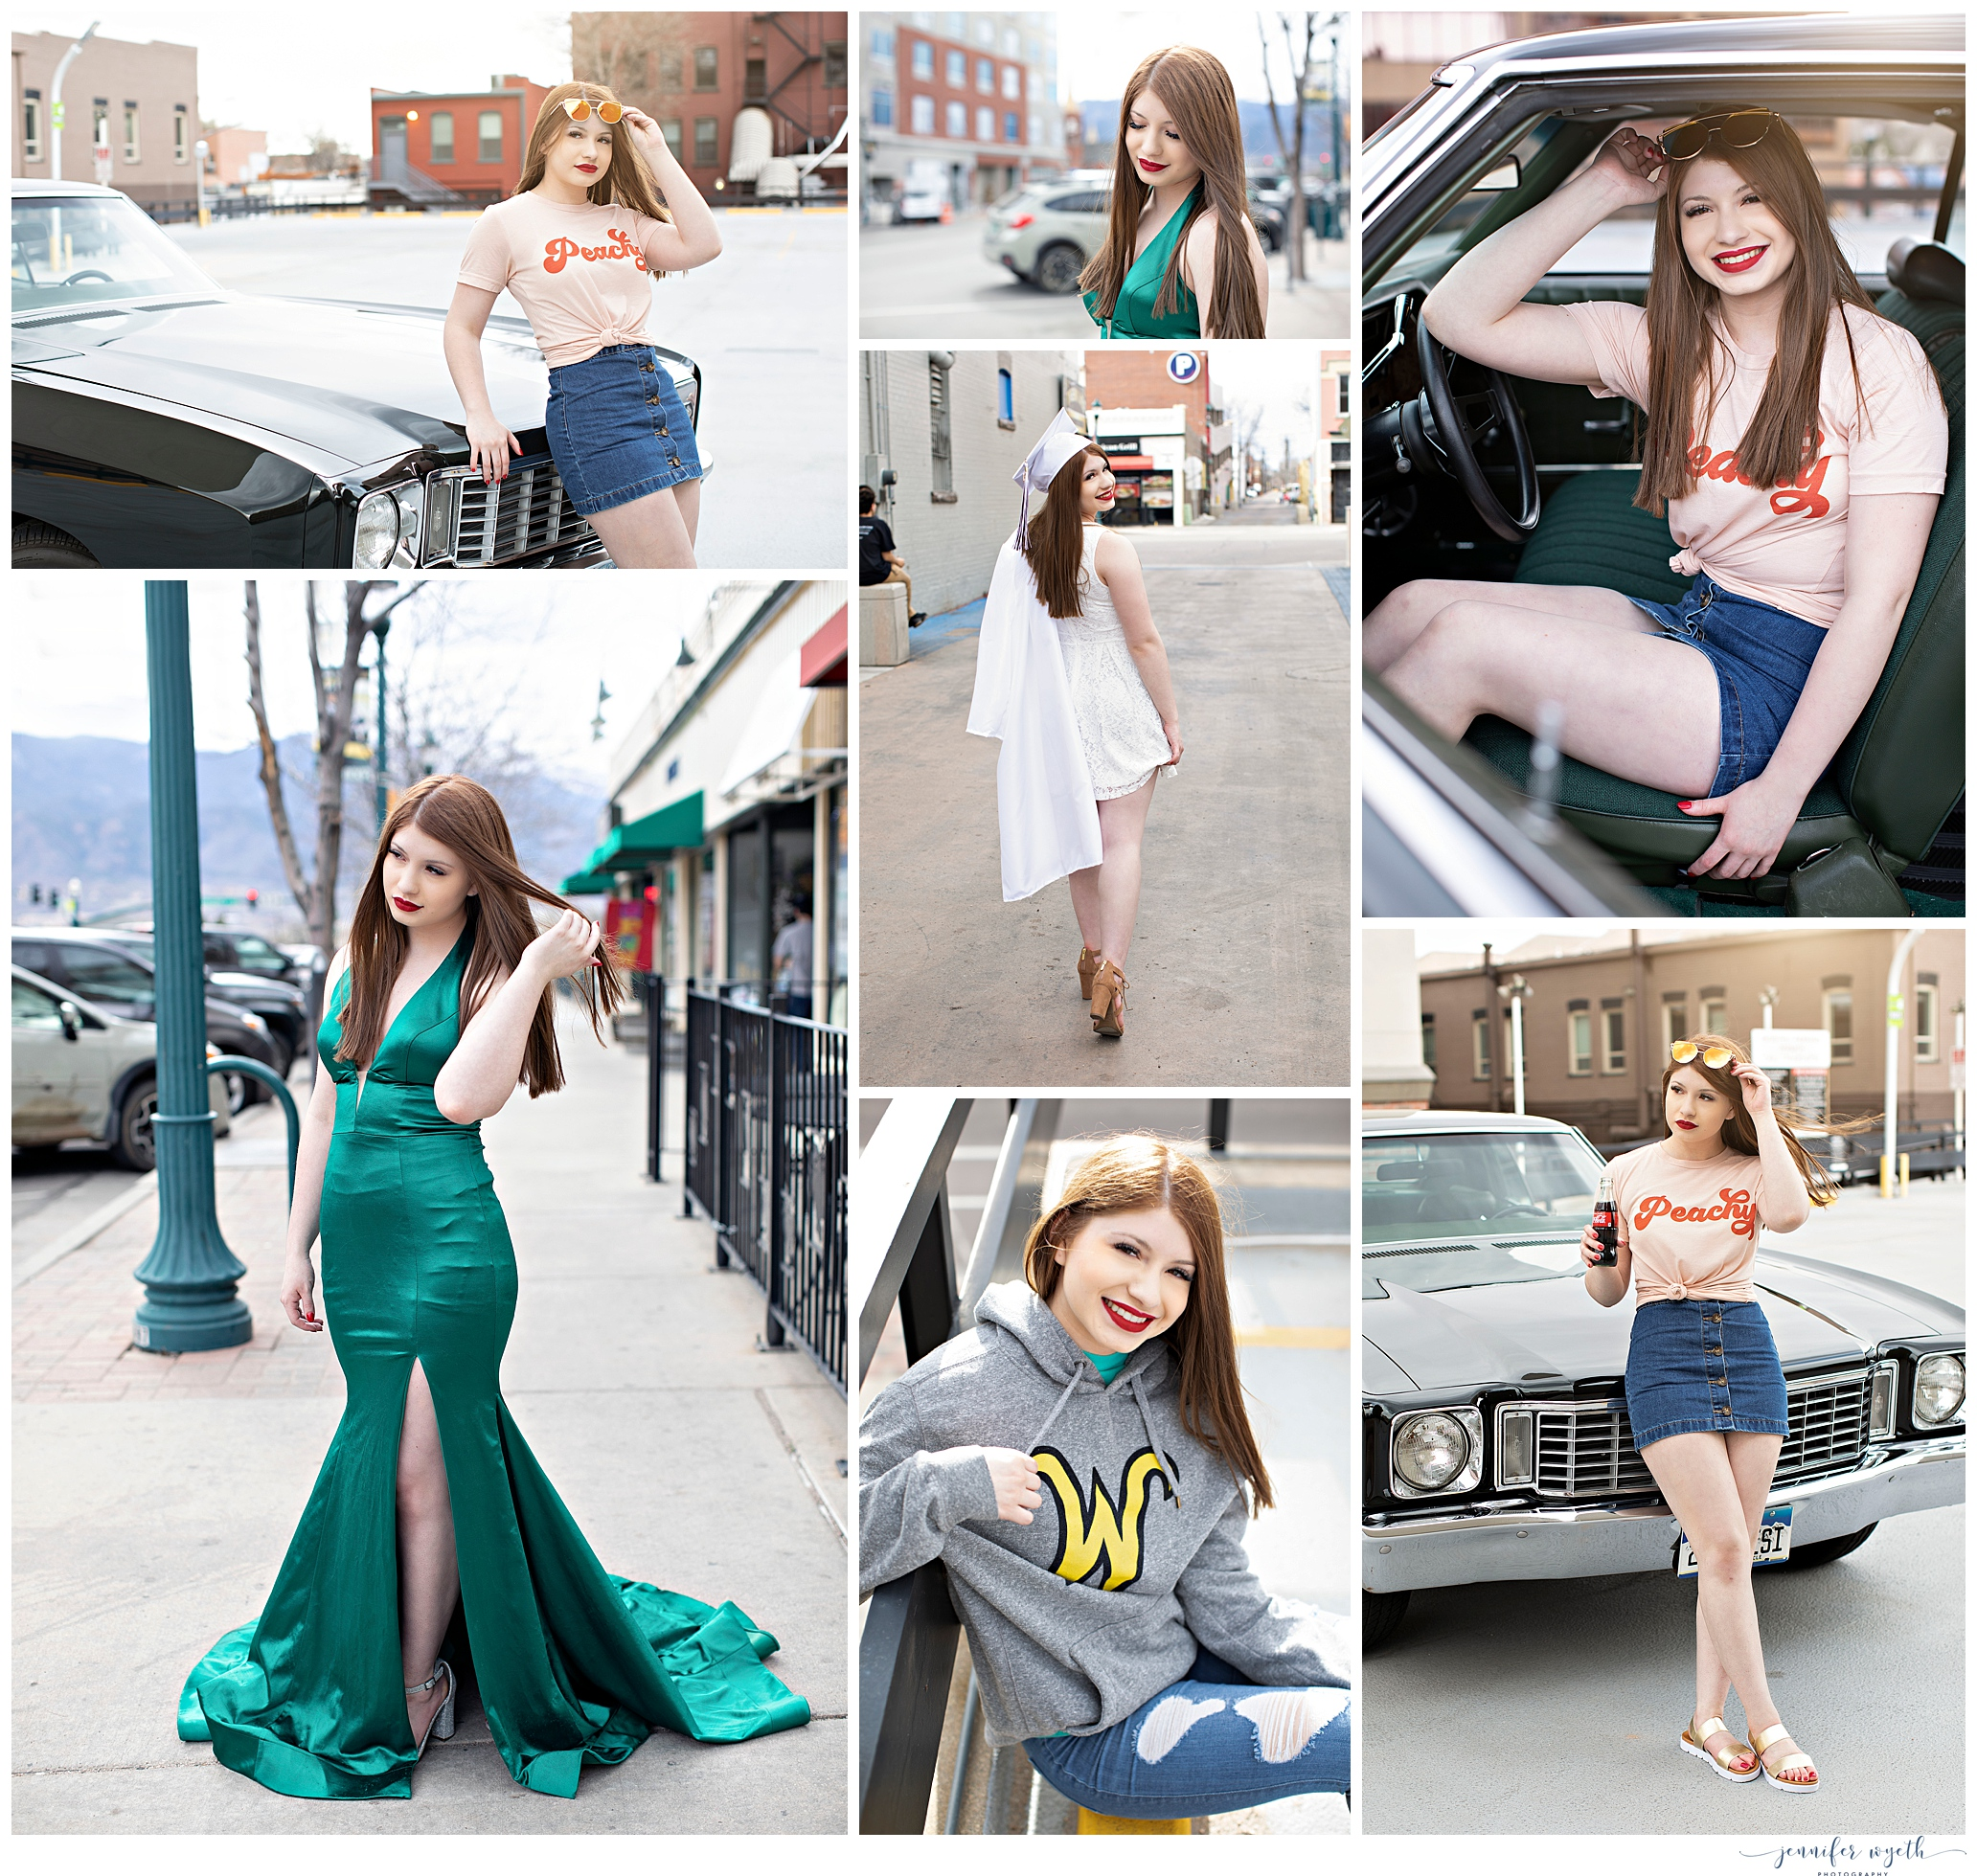 Jennifer-Wyeth-photography-senior-pictures-colorado-springs-photographer_0299.jpg